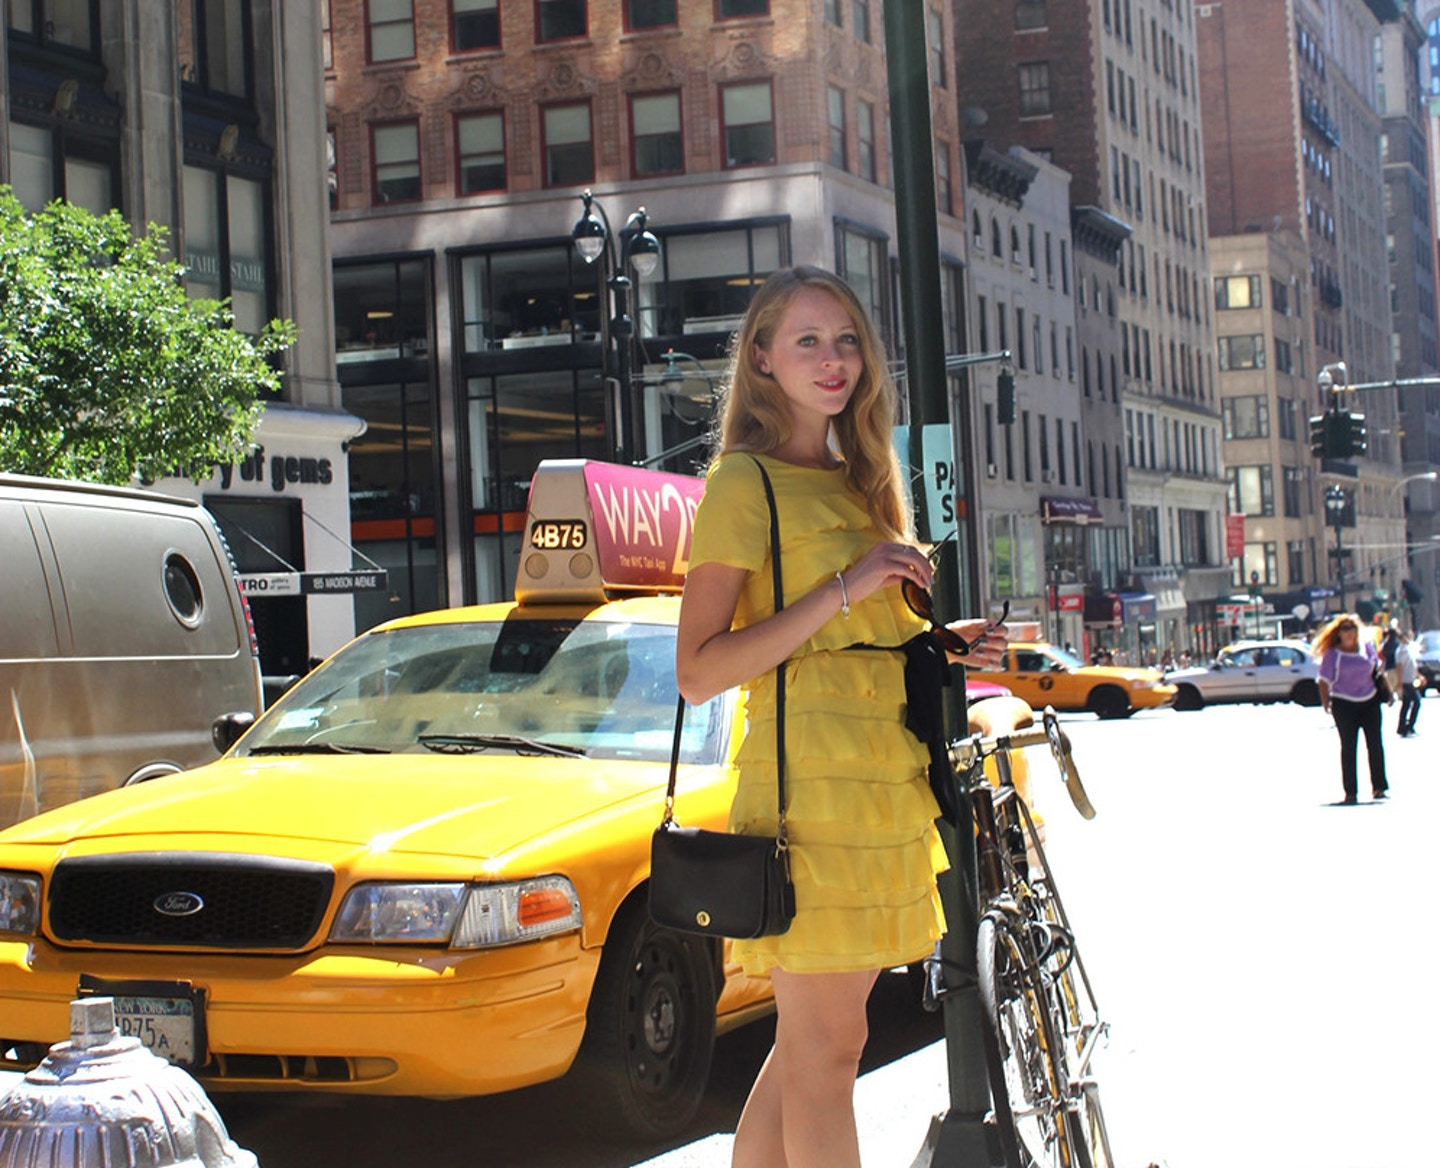 NYC Taxi Cab & Eats and Treats